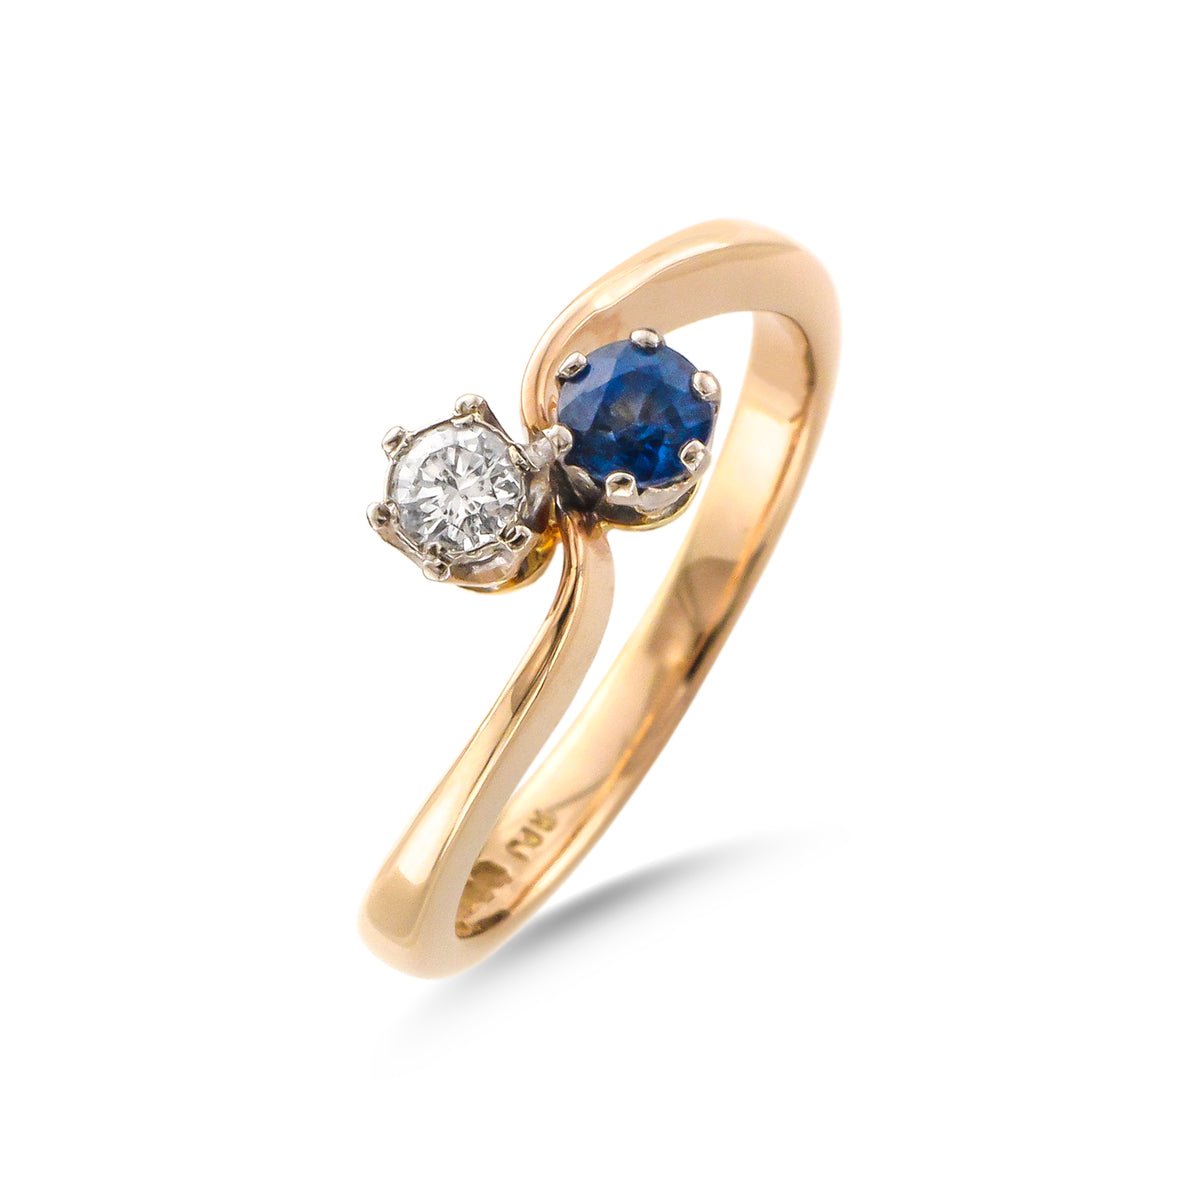 Vintage 14ct Yellow Gold Sapphire and Diamond Ring